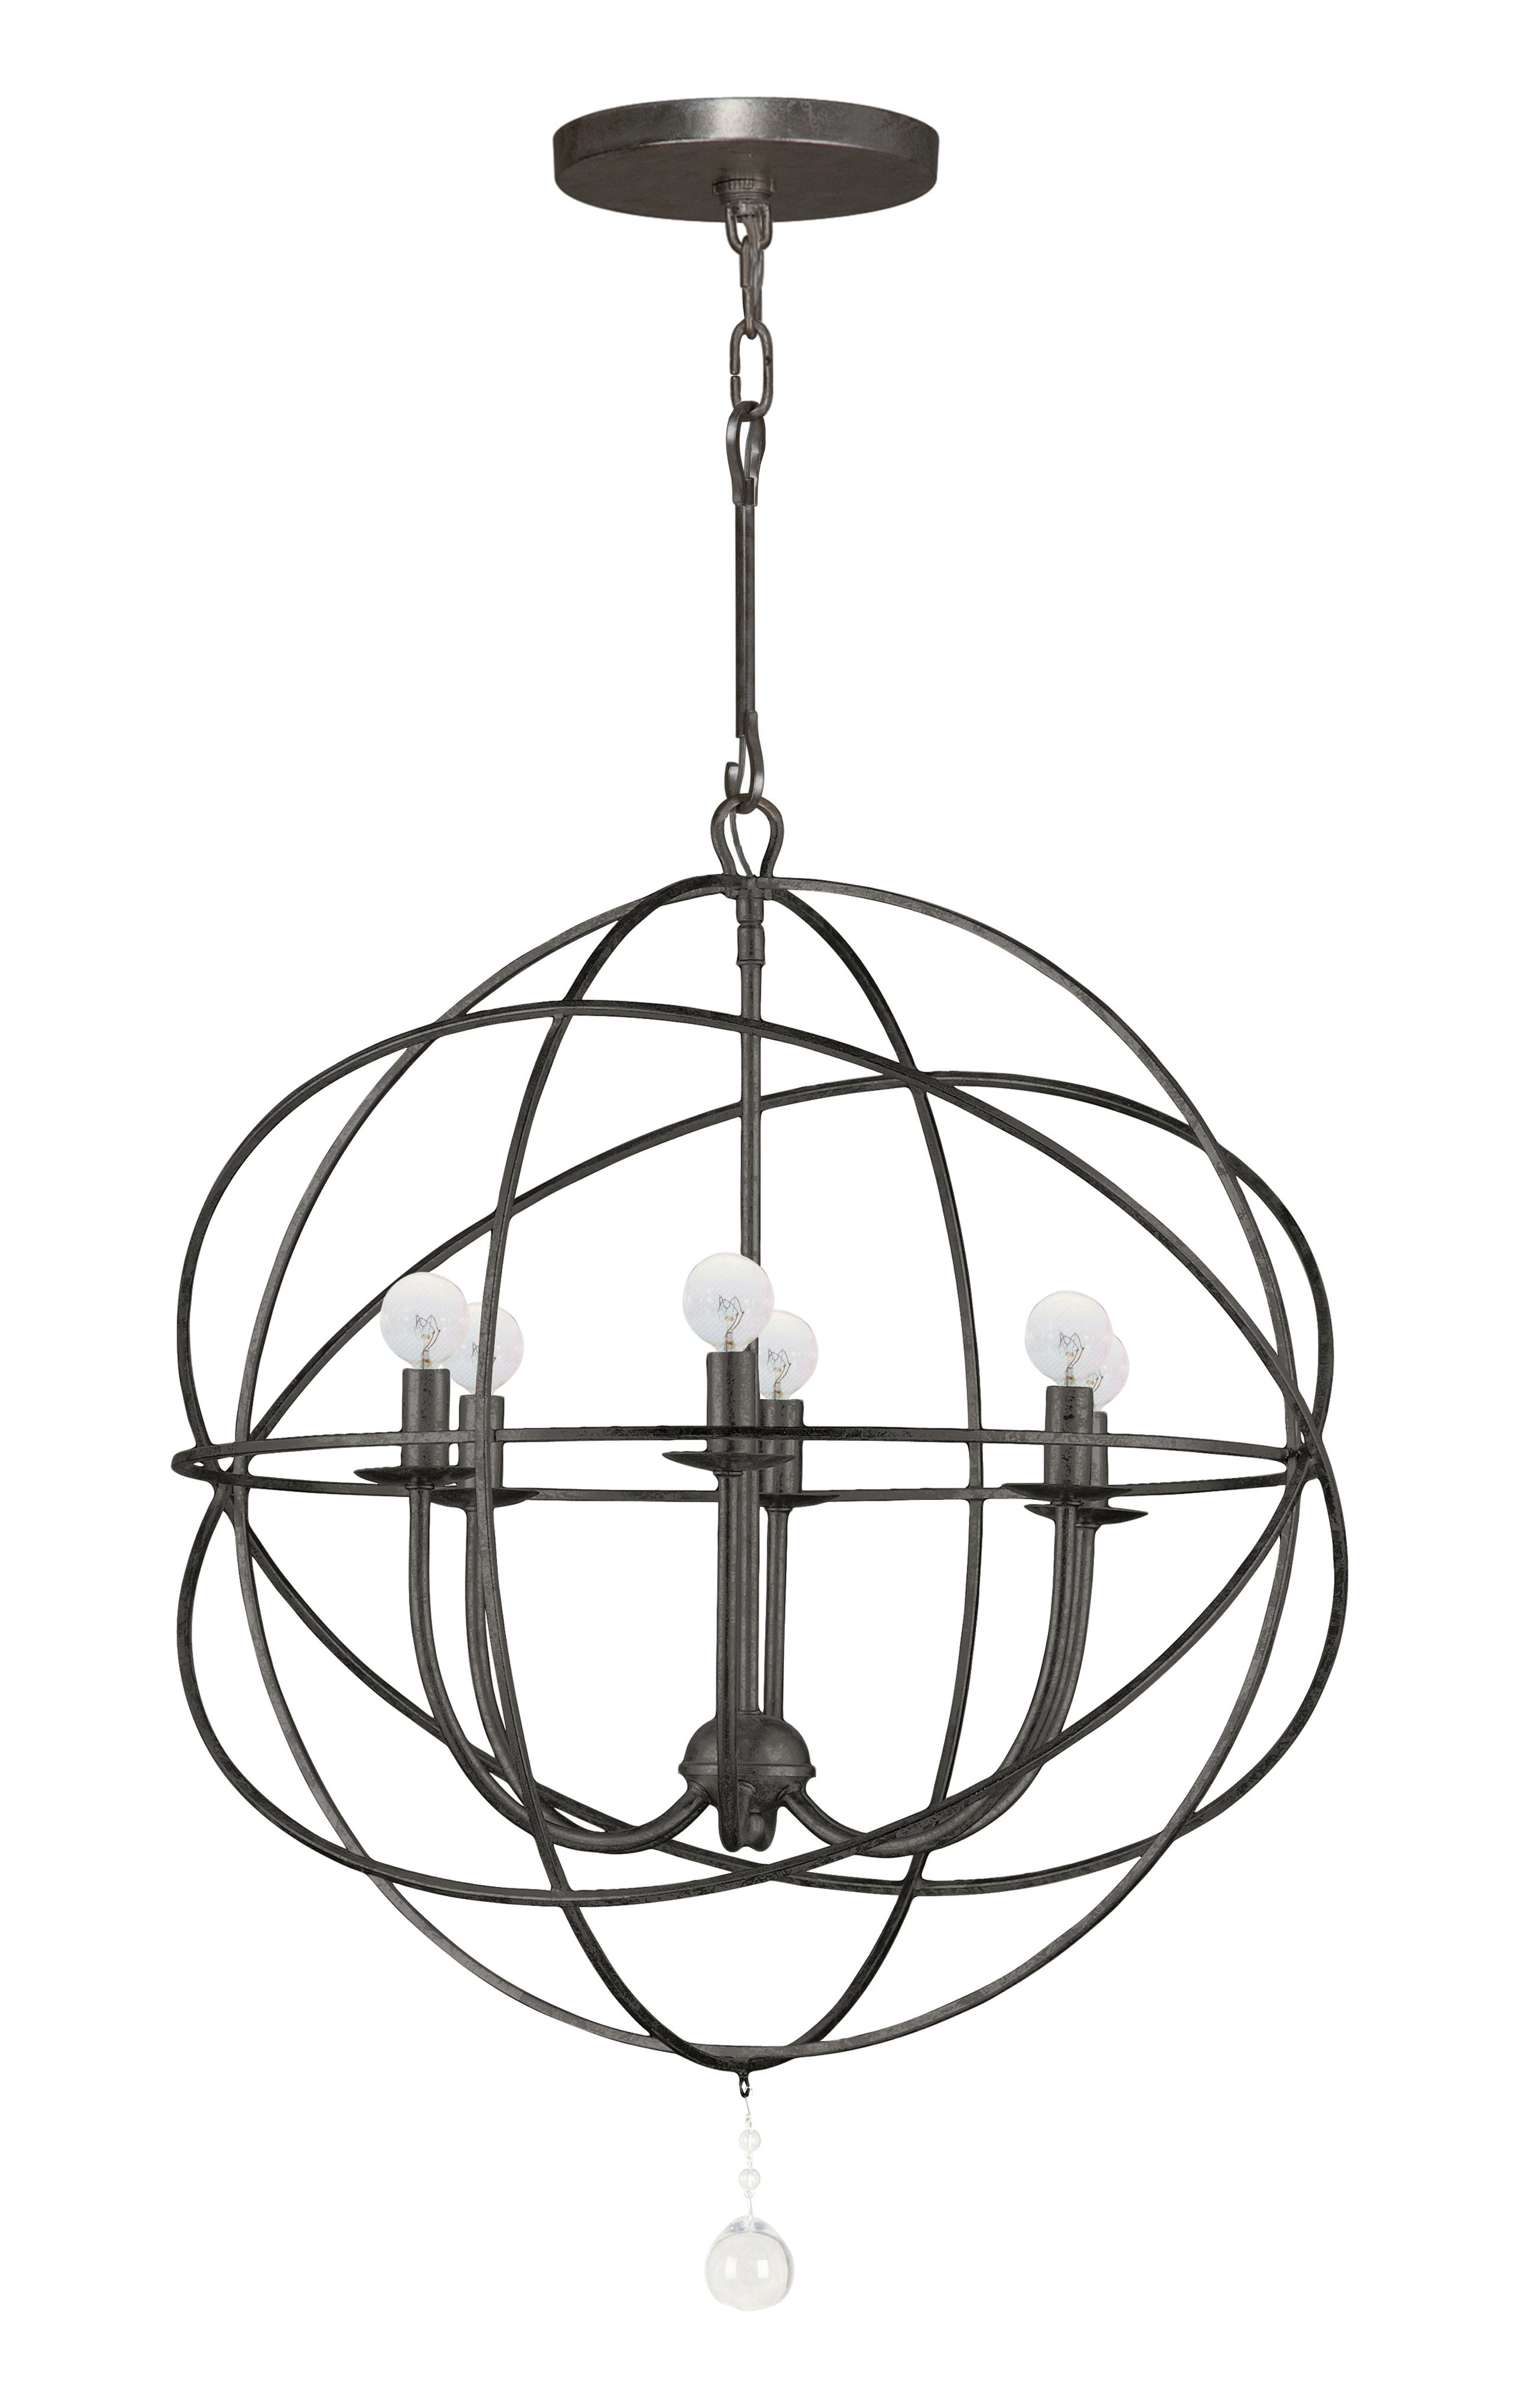 Gregoire 6 Light Globe Chandelier Regarding Gregoire 6 Light Globe Chandeliers (View 4 of 30)